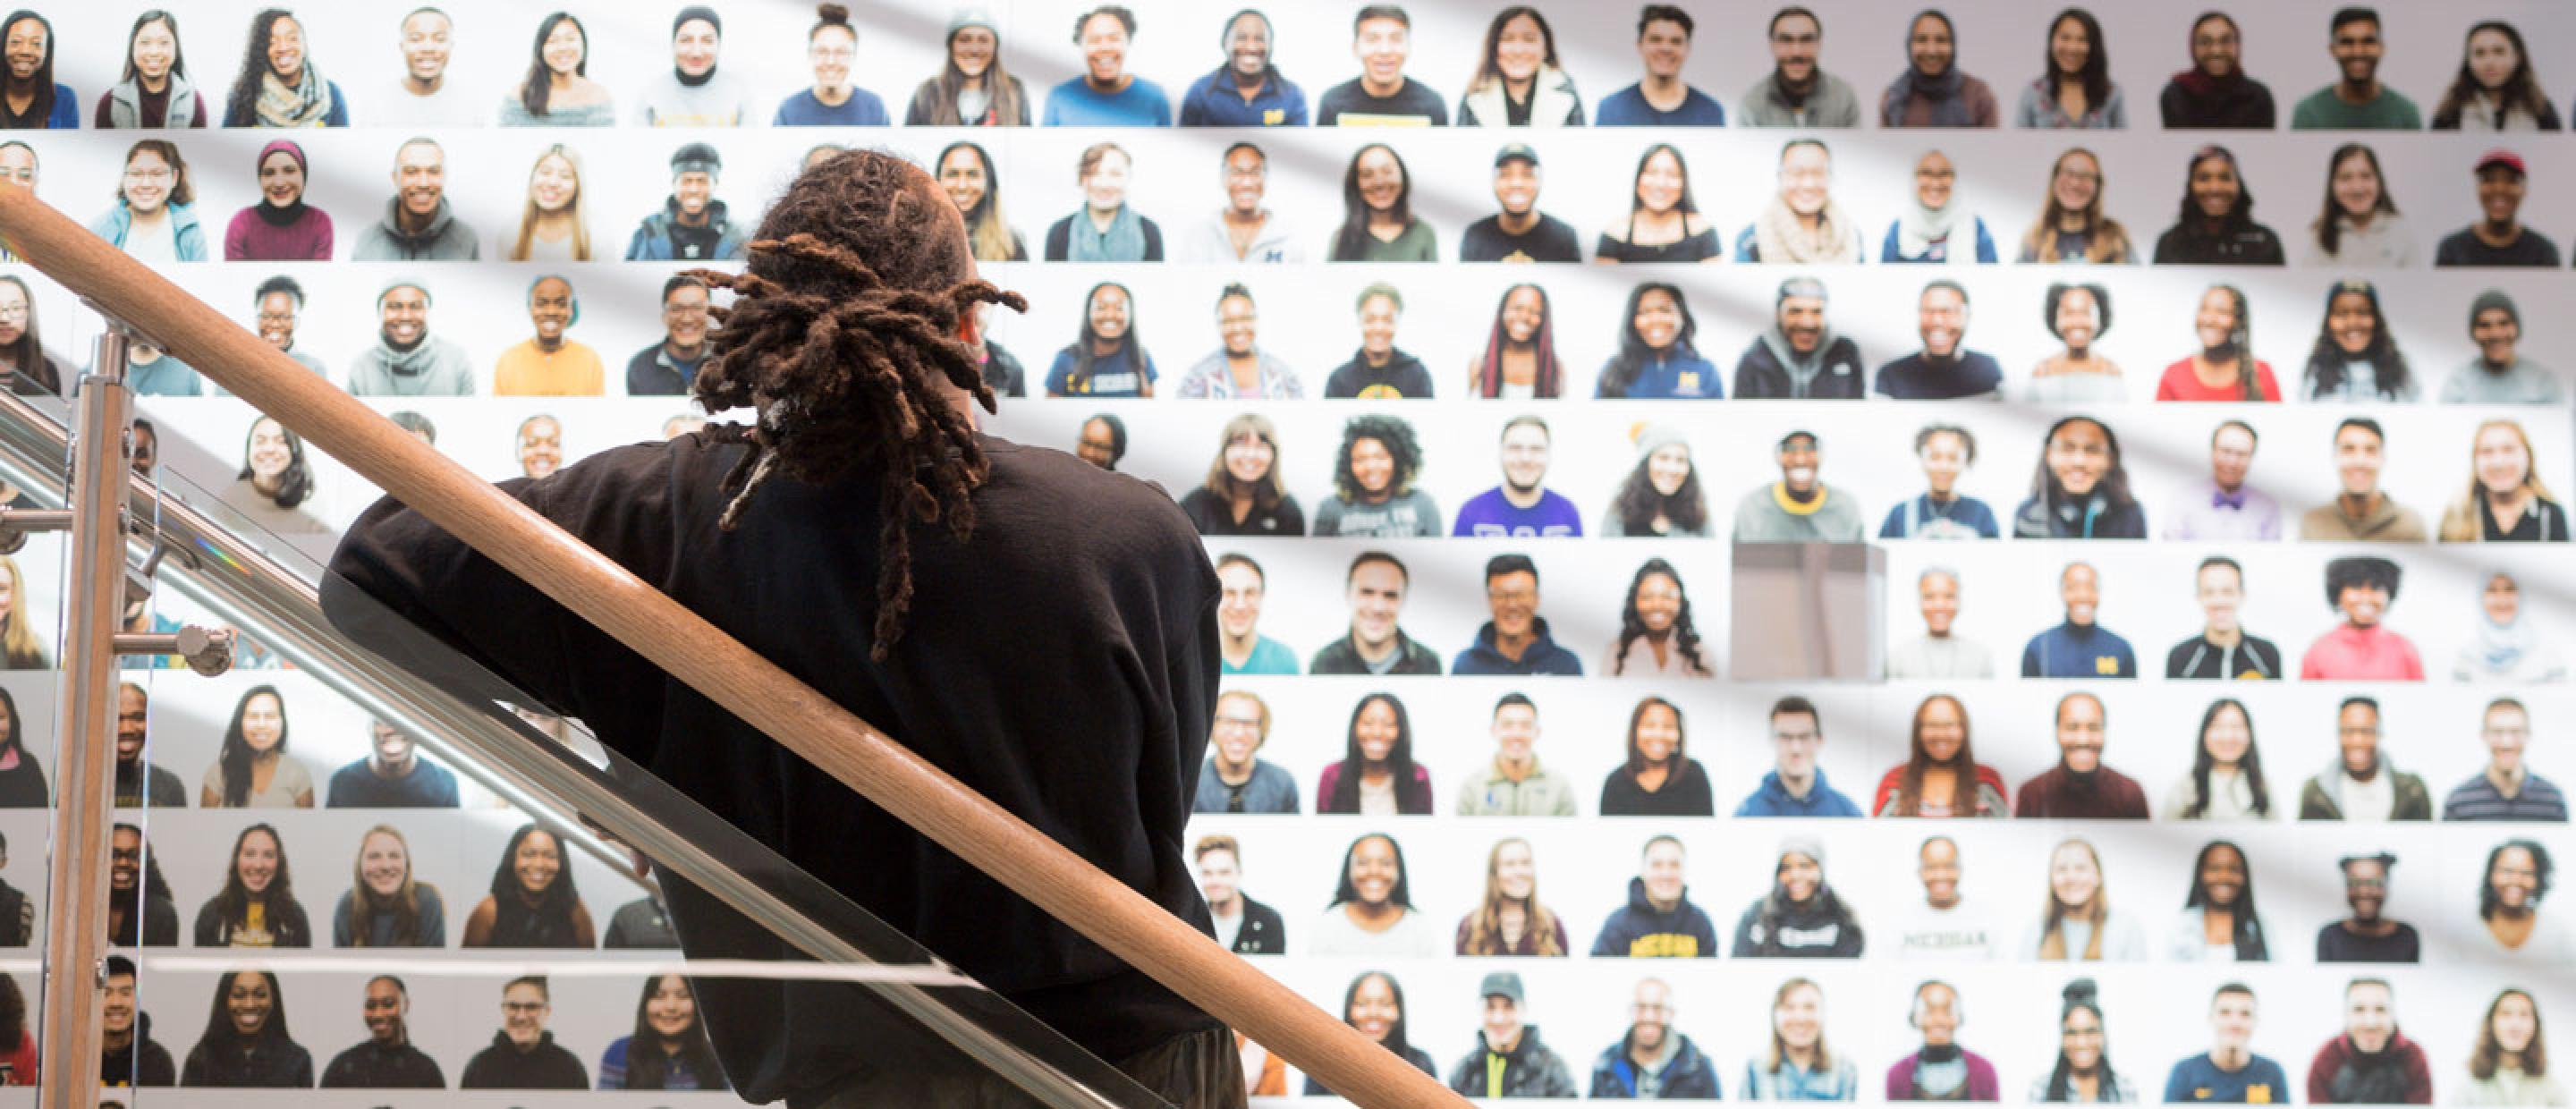 A man looks at a photo collage of the University of Michigan community